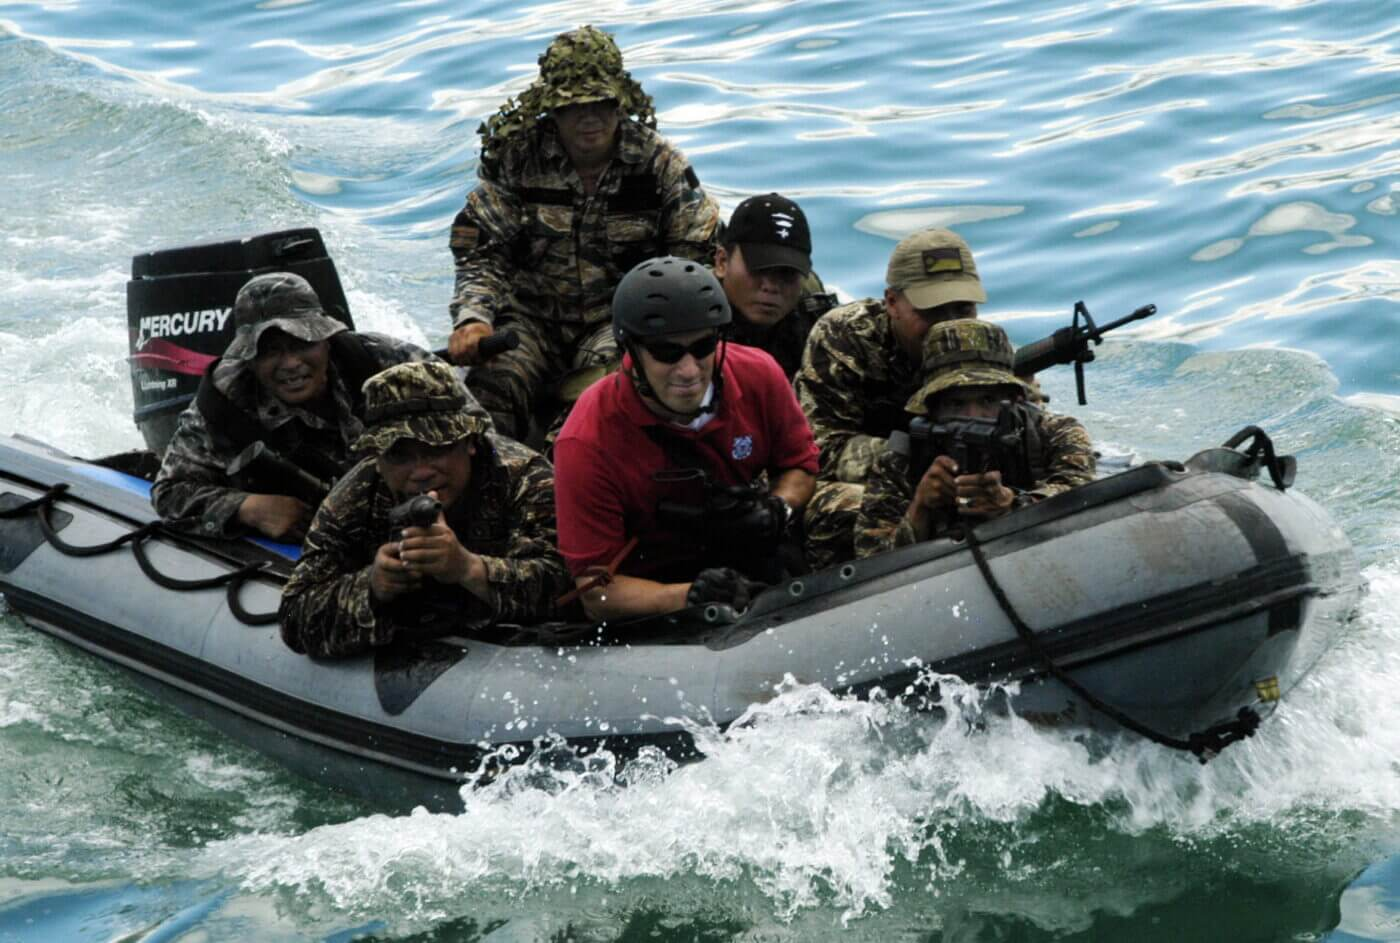 Philippine Navy Sailors with M3A1 SMGs